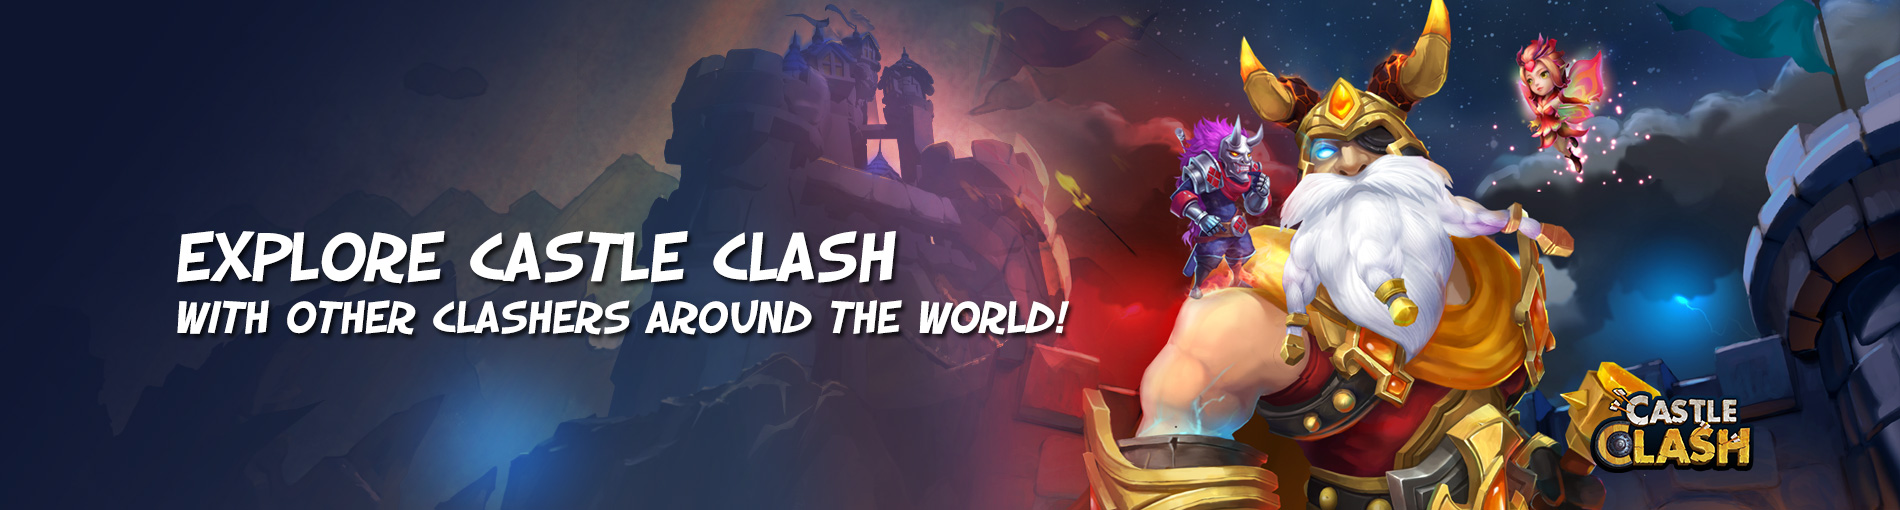 Explore Castle Clash with other Clashers around the world